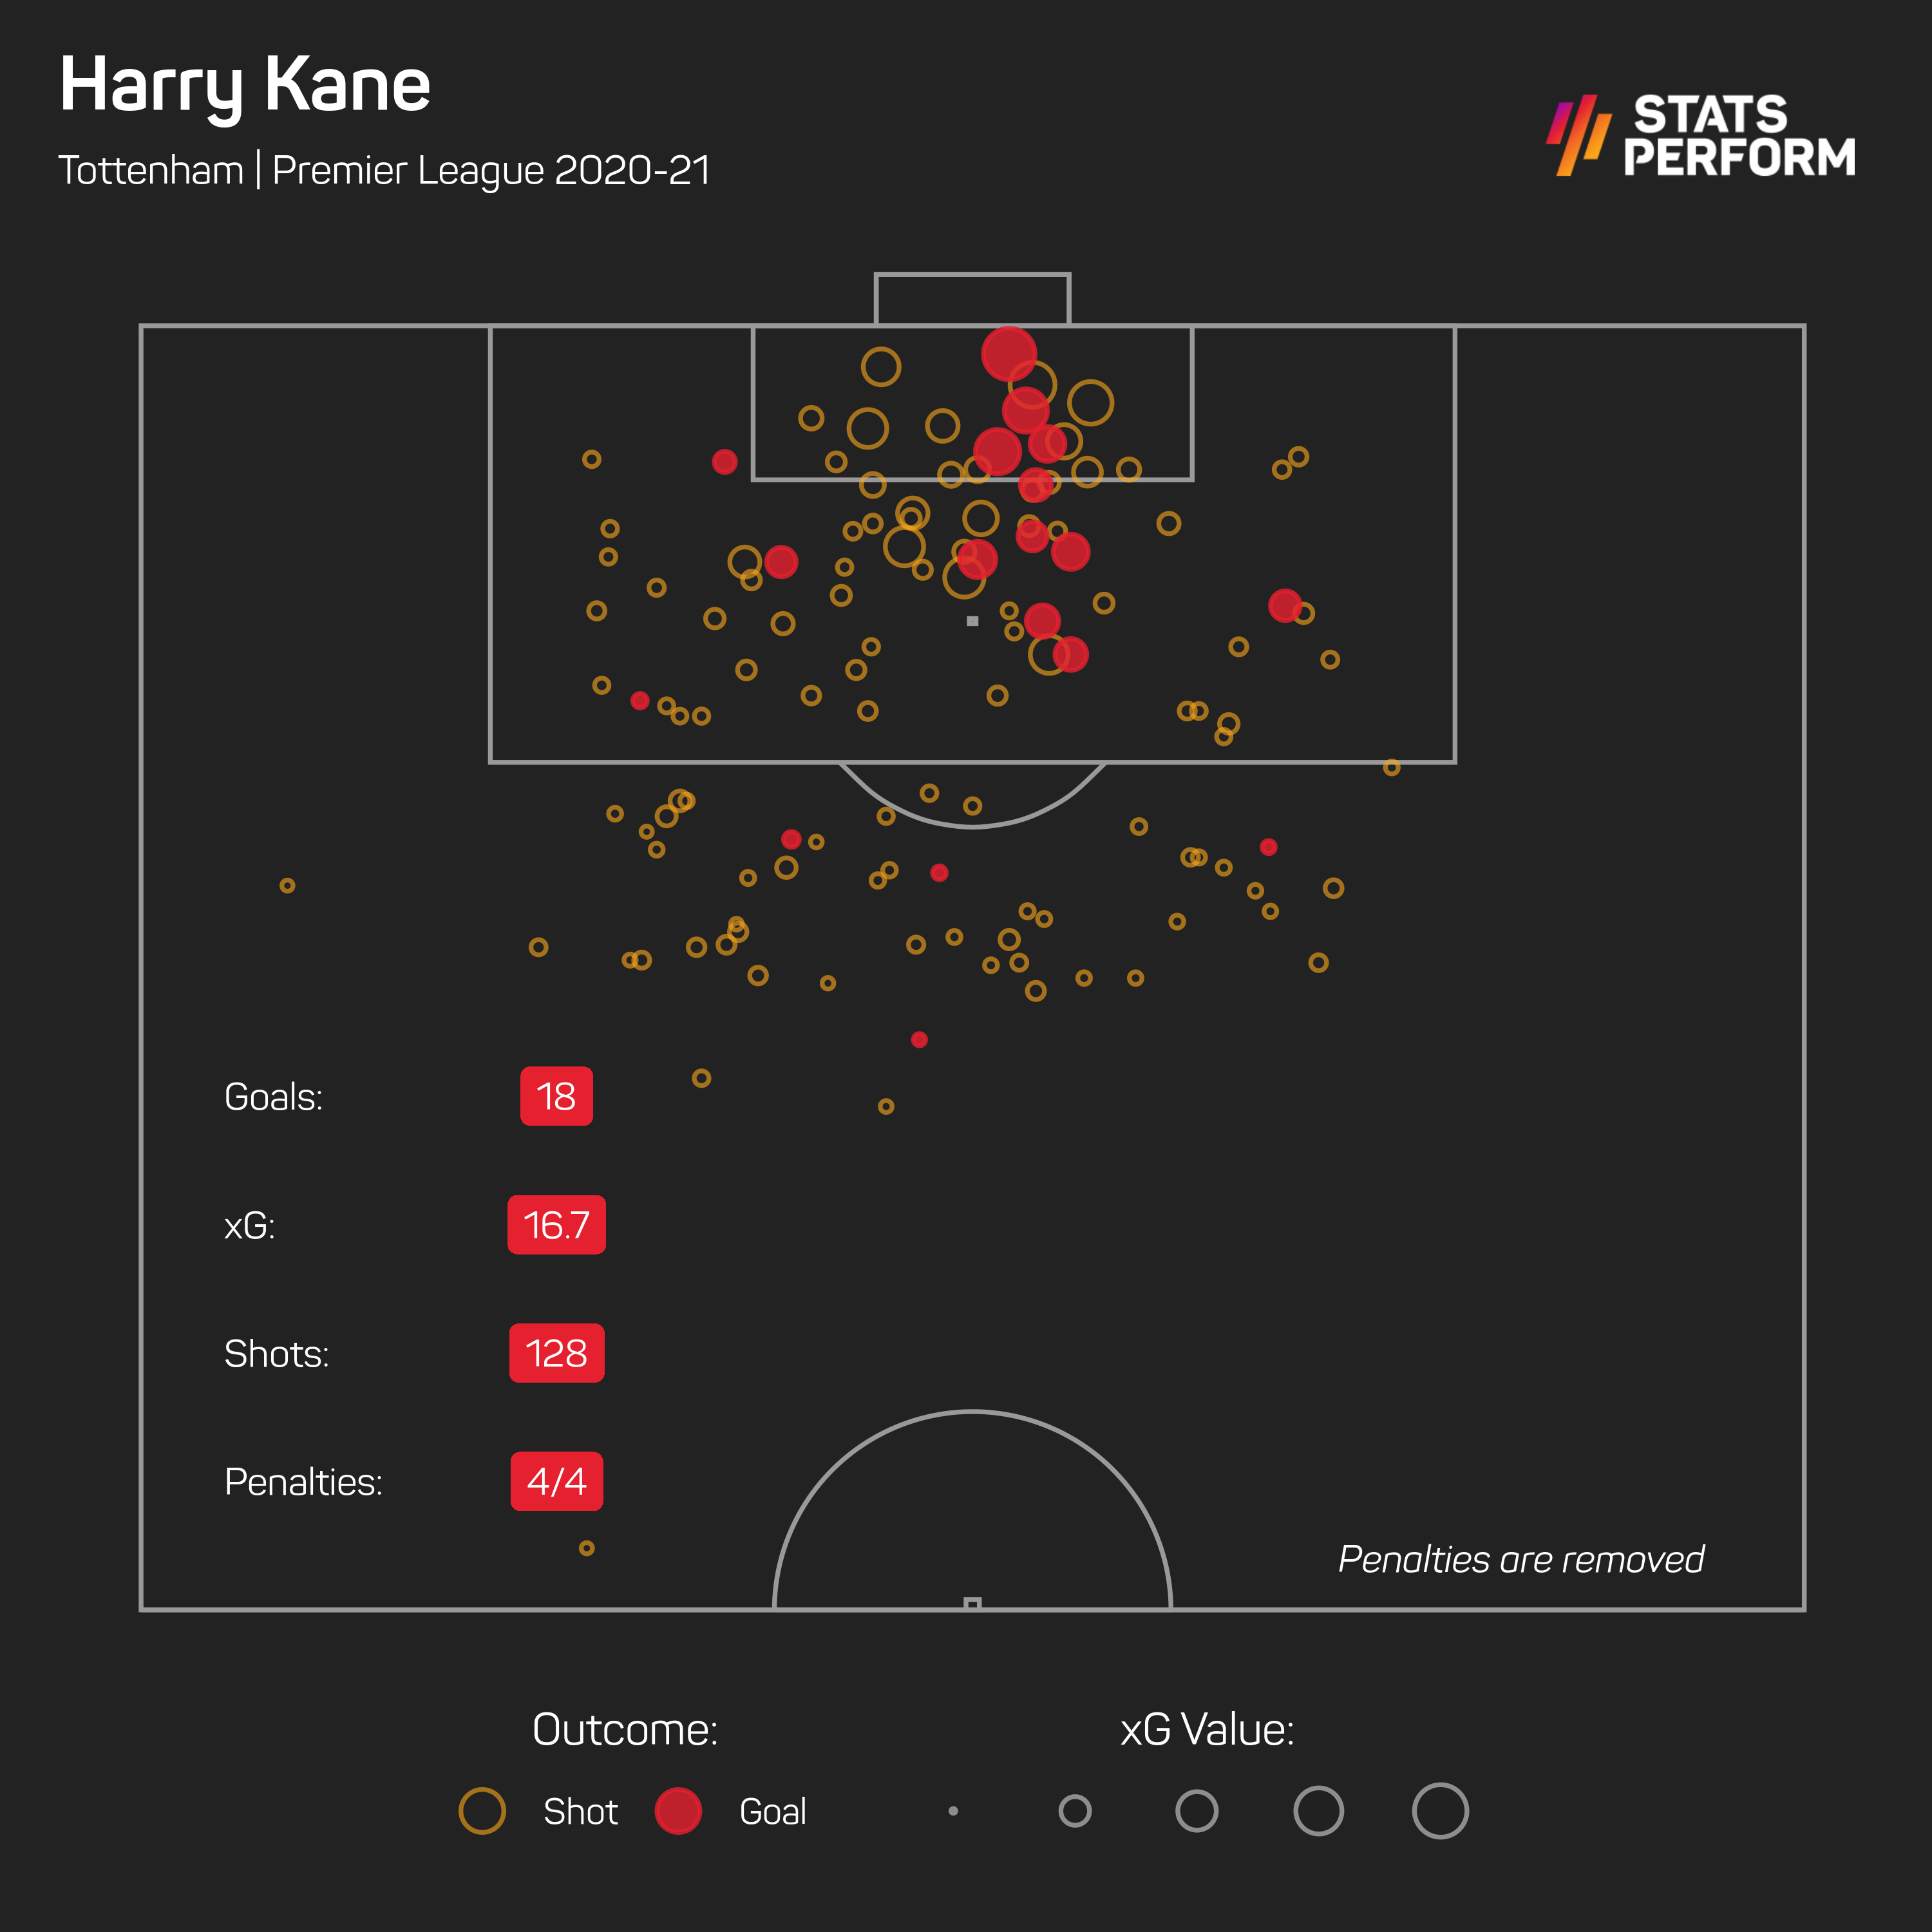 Kane is in the running for the Golden Boot